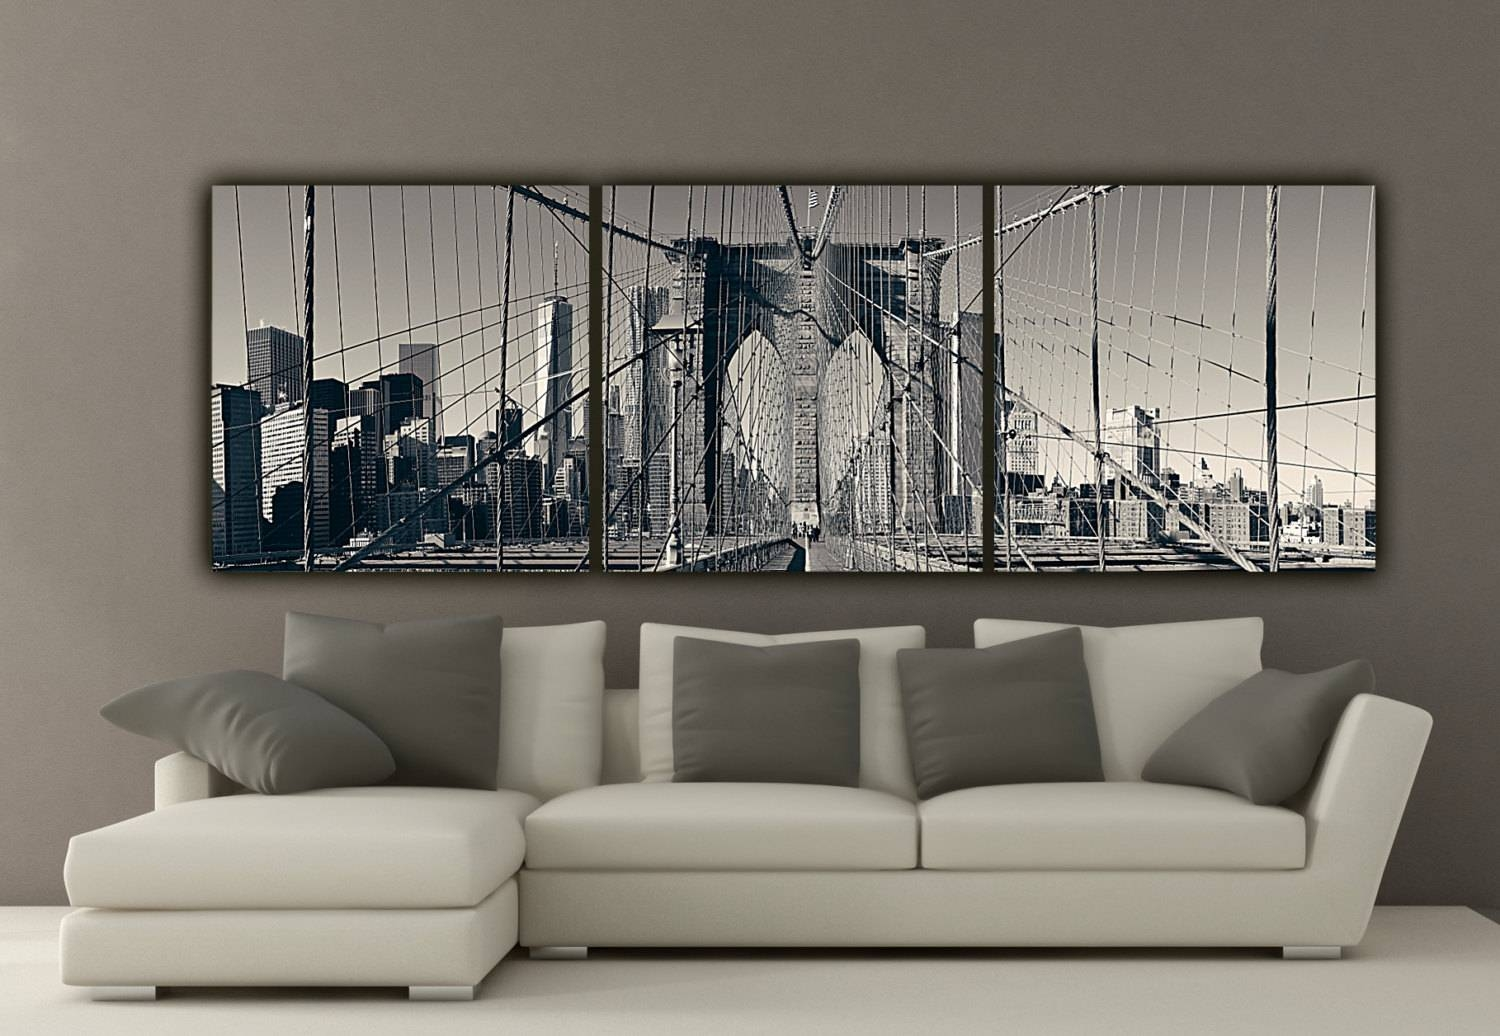 New York Brooklyn Bridge Canvas Wall Art Black And White New Intended For Most Recent New York City Canvas Wall Art (View 1 of 20)